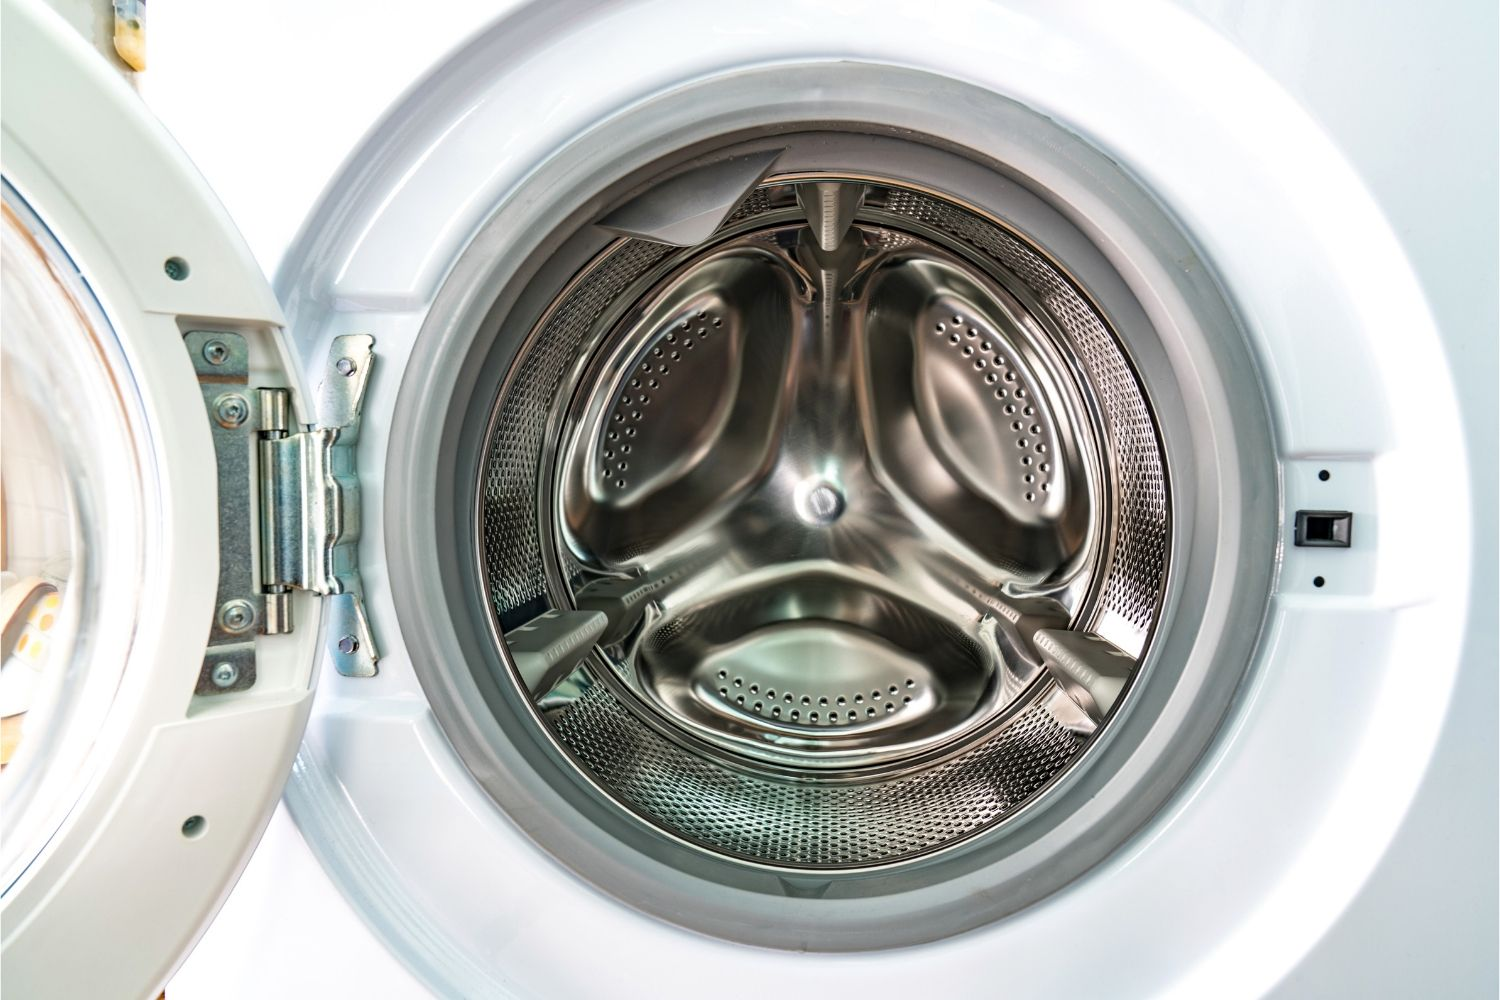 Boy, 3, trapped in washing machine, dies | That's Life! Magazine